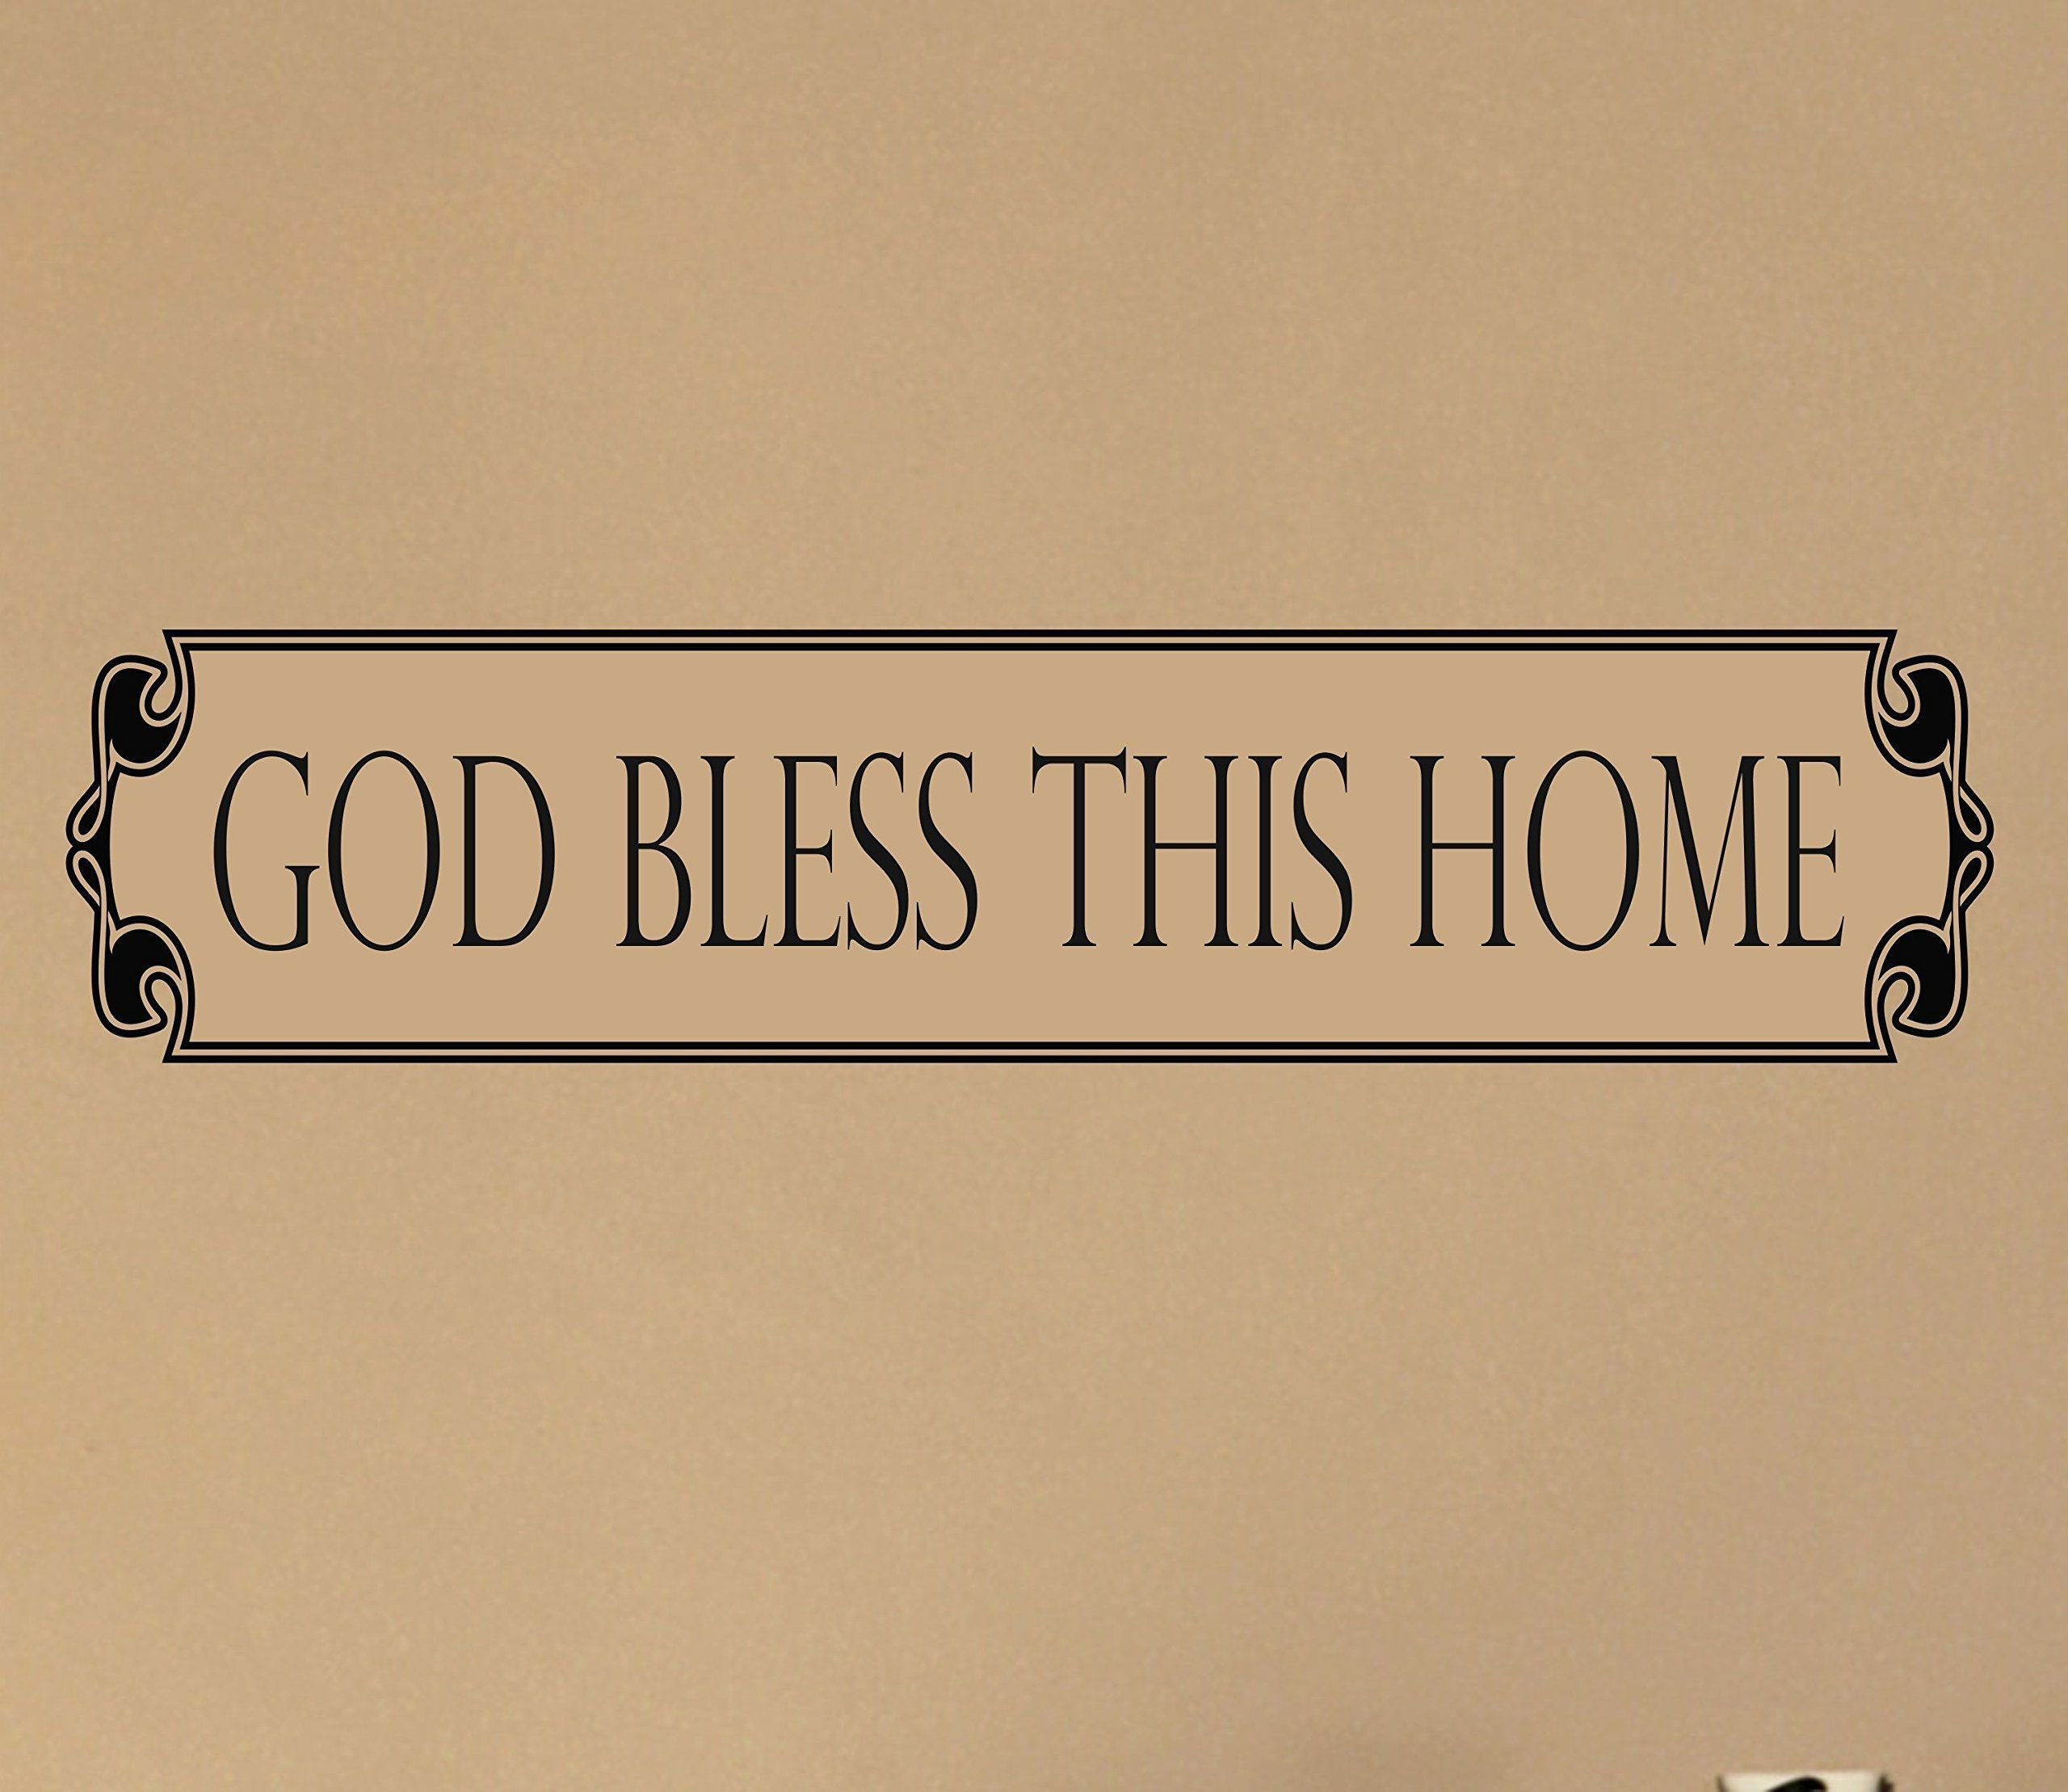 Modern God Bless This Home Wall Art Elaboration - Wall Art ...